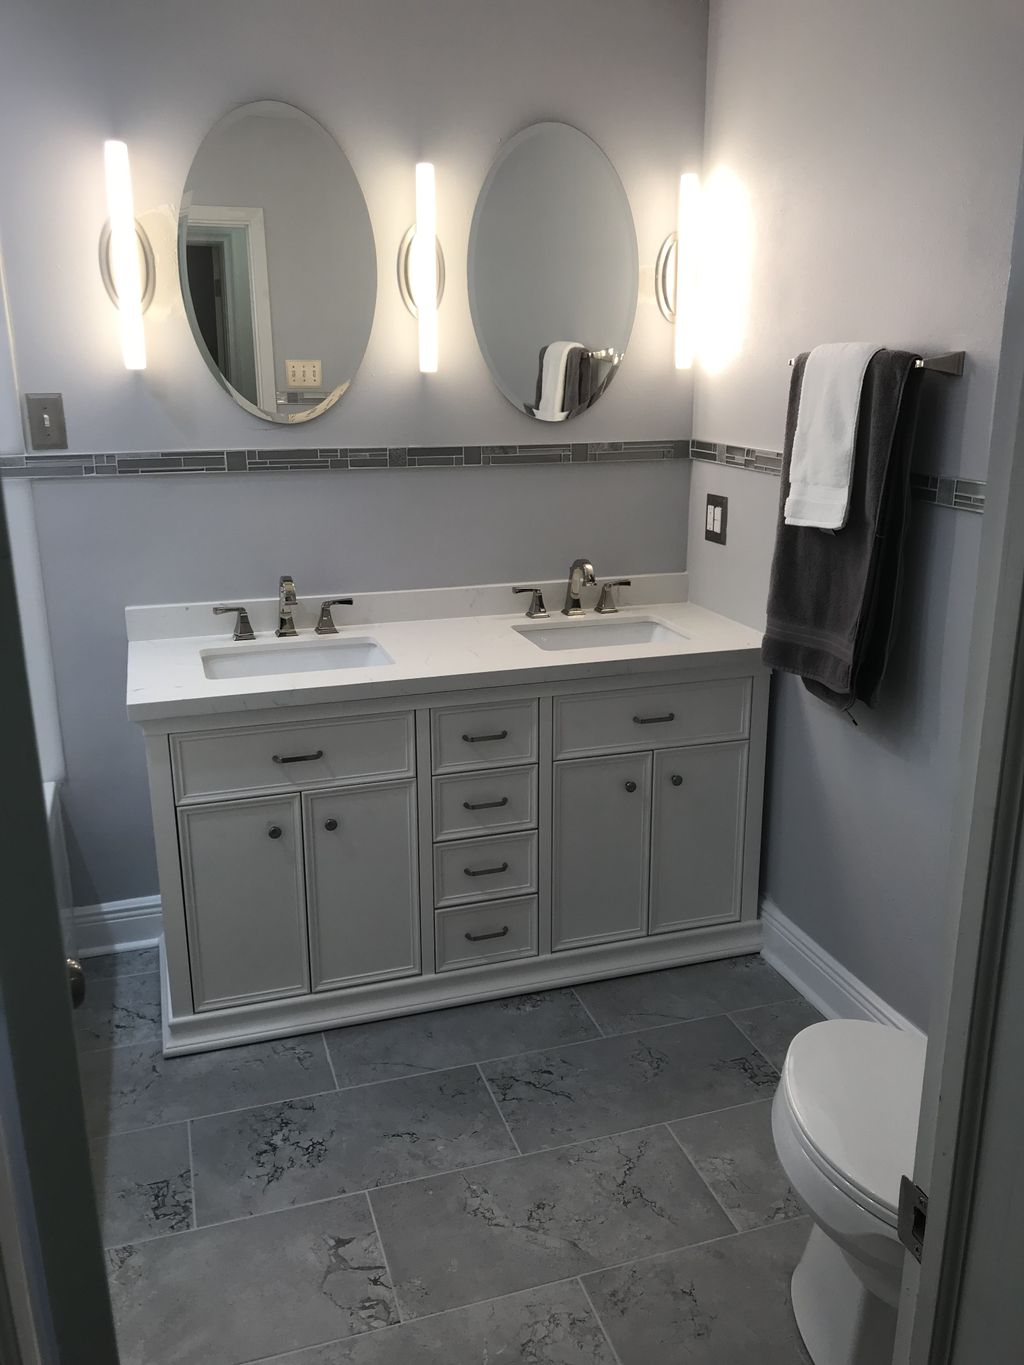 Another bathroom remodel